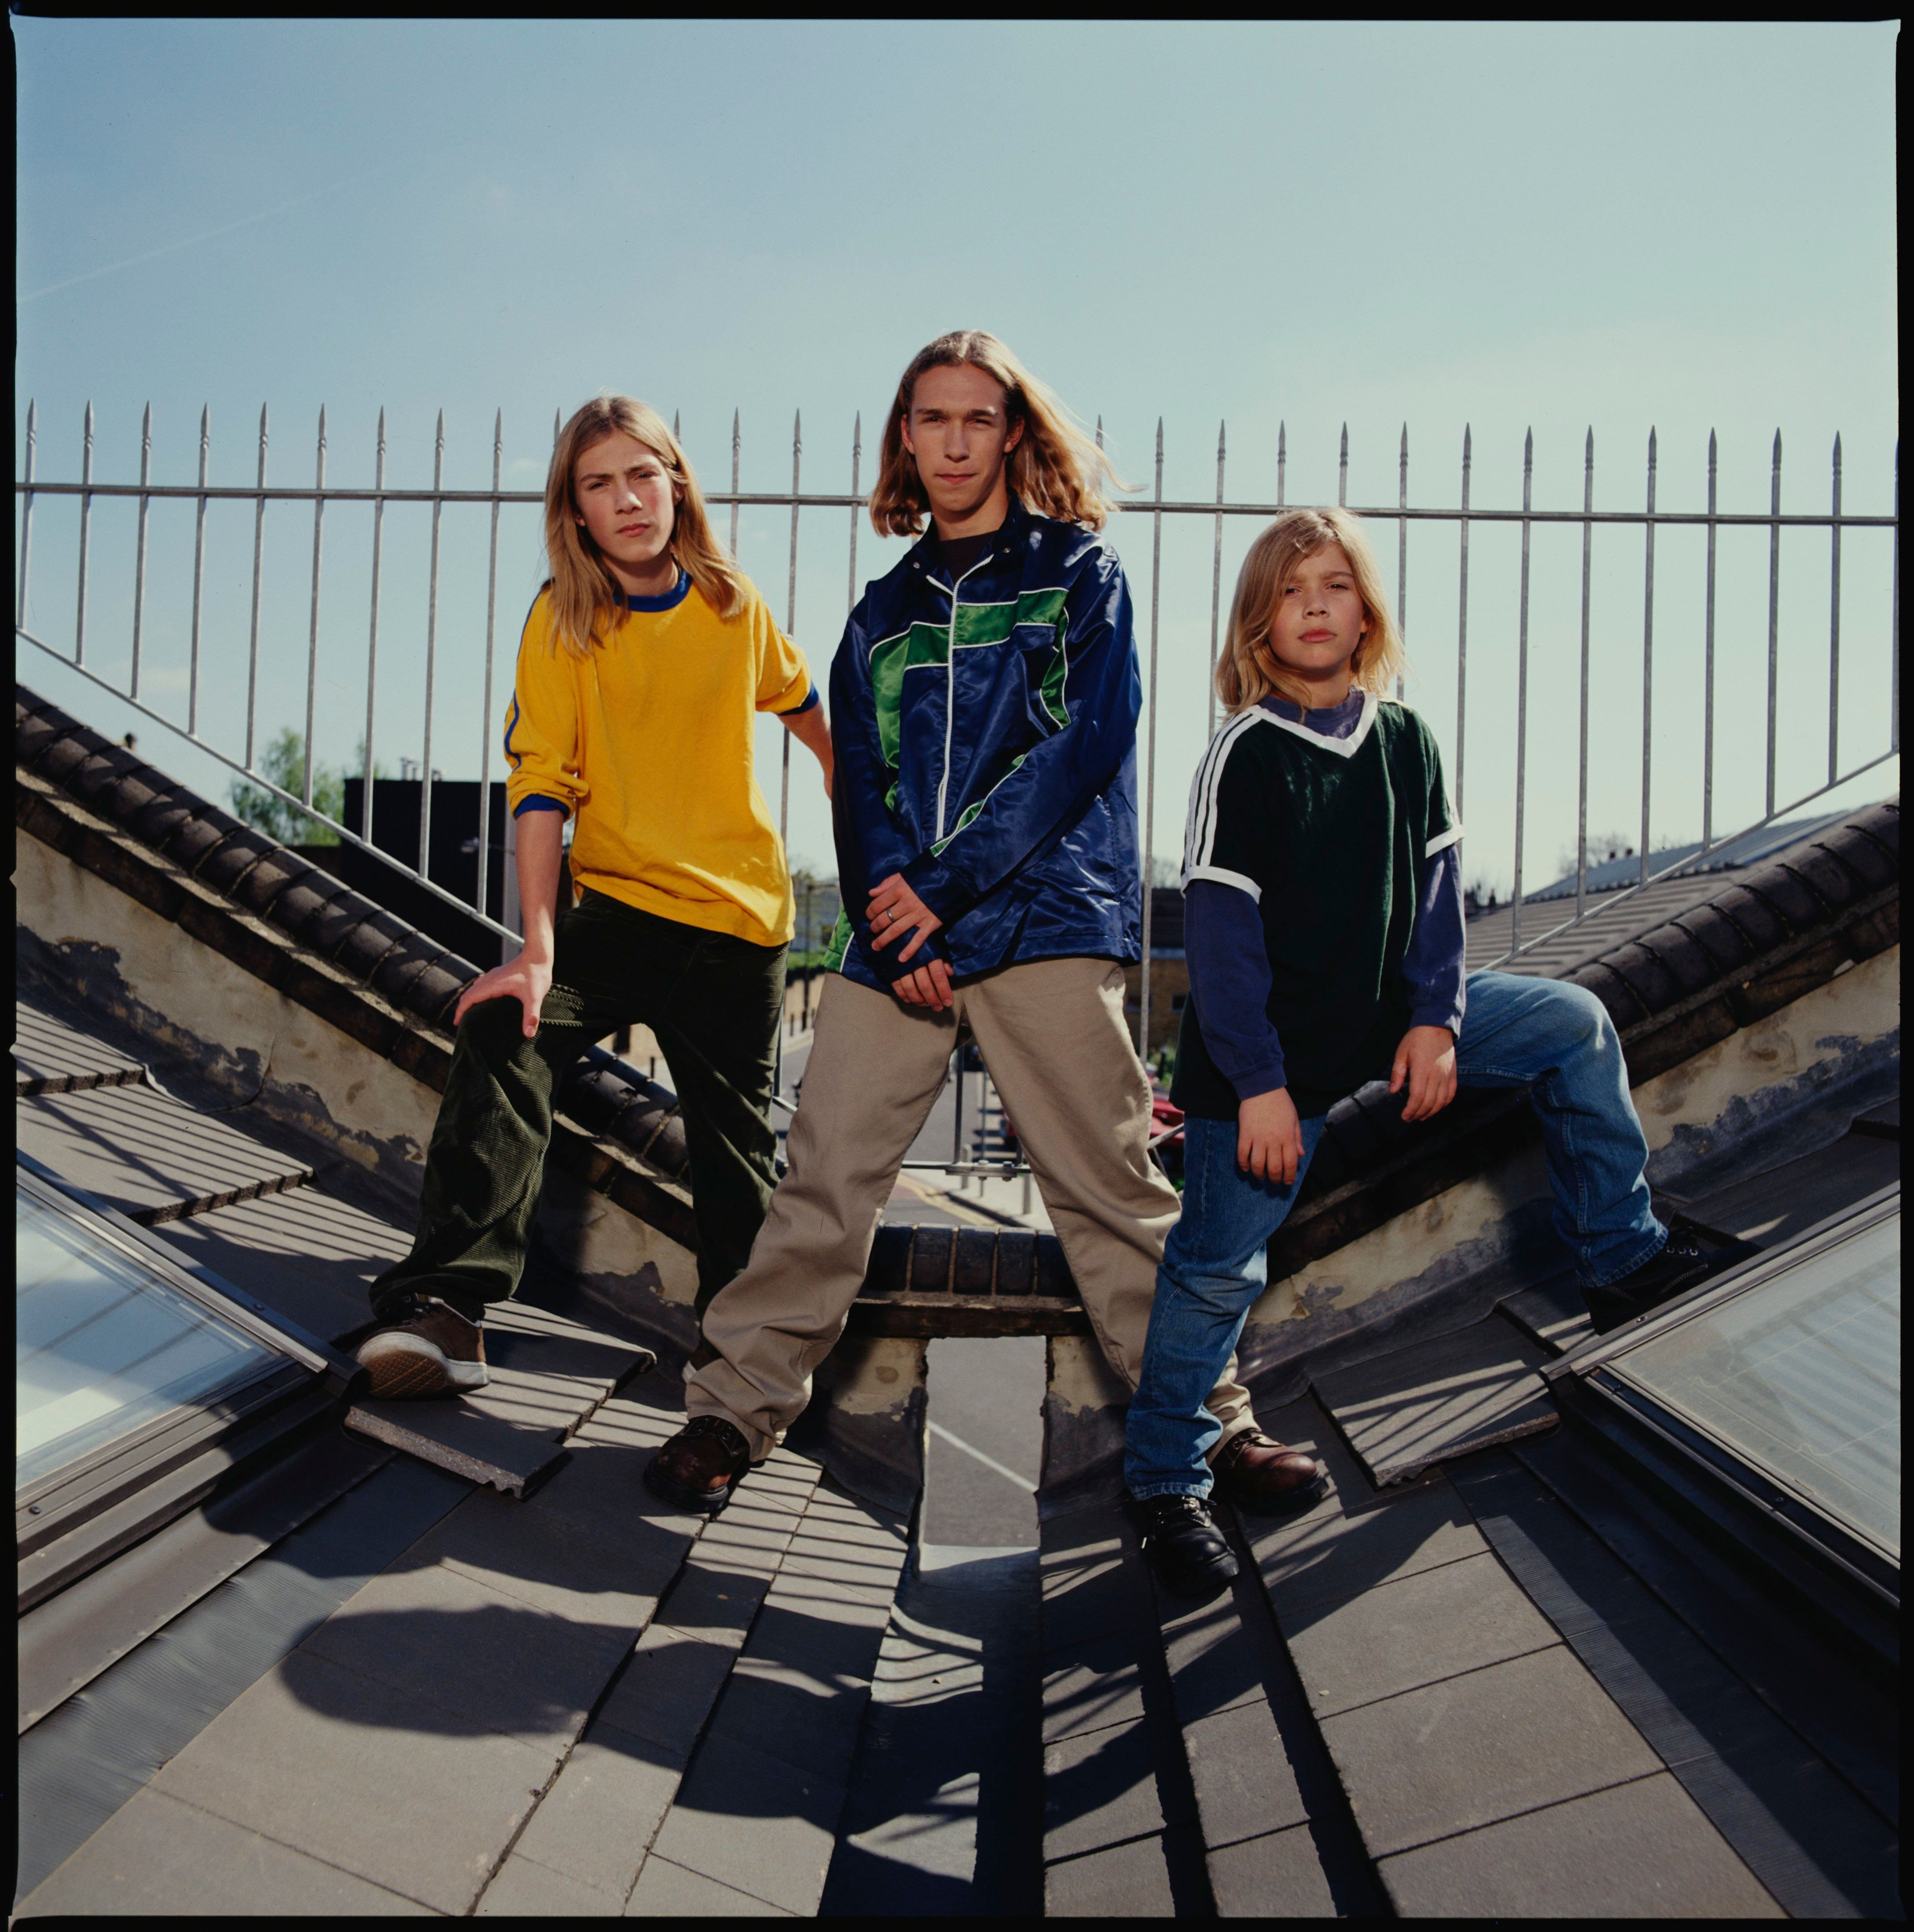 You're Old, And Hanson's Kids Are Starring In Their Music Videos